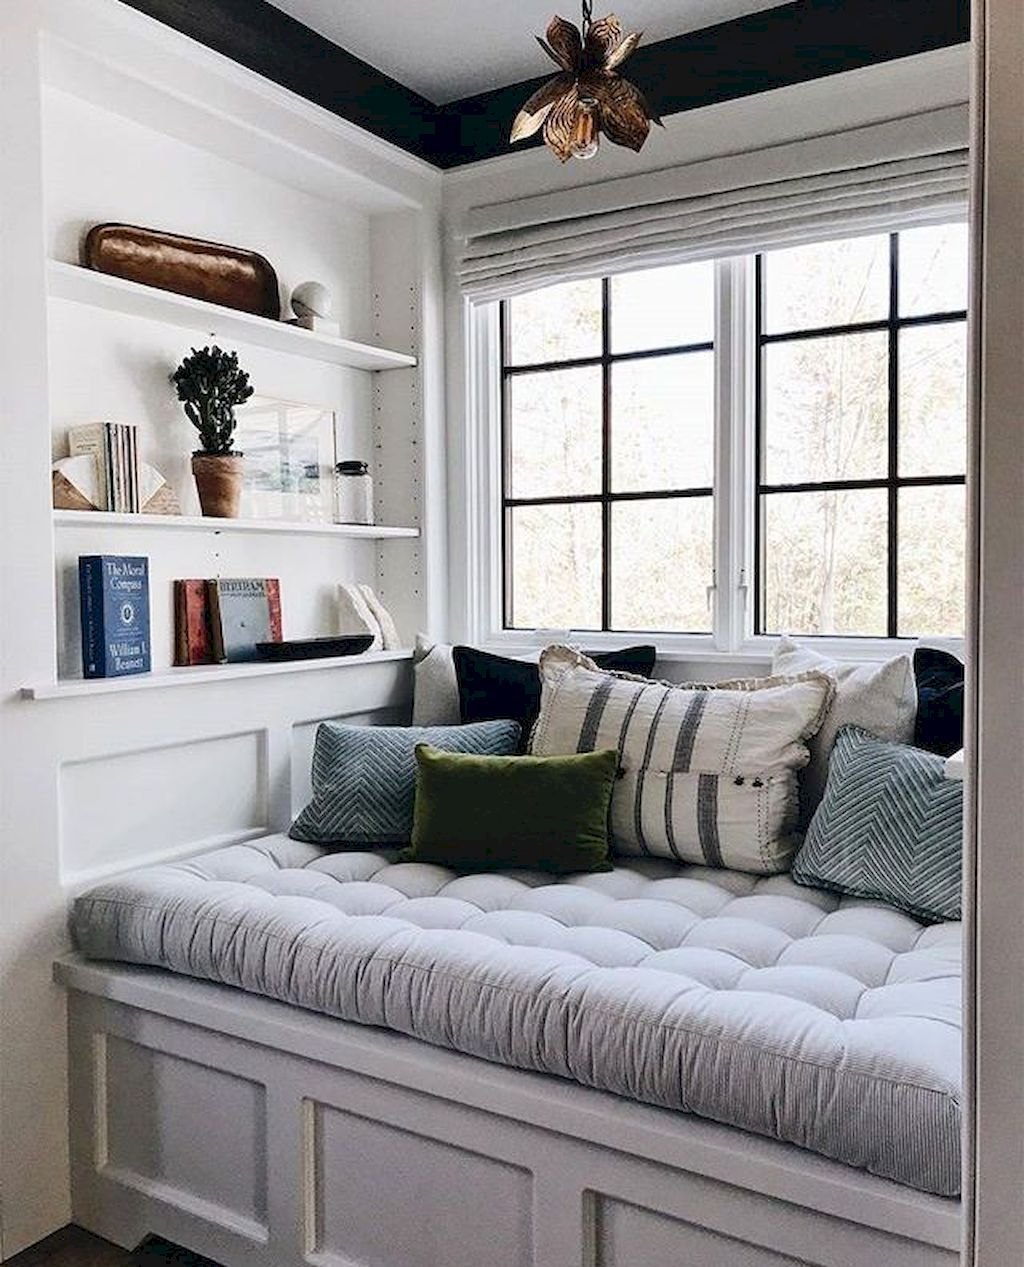 Fully Comfortable Bay Window Seating Ideas (With images